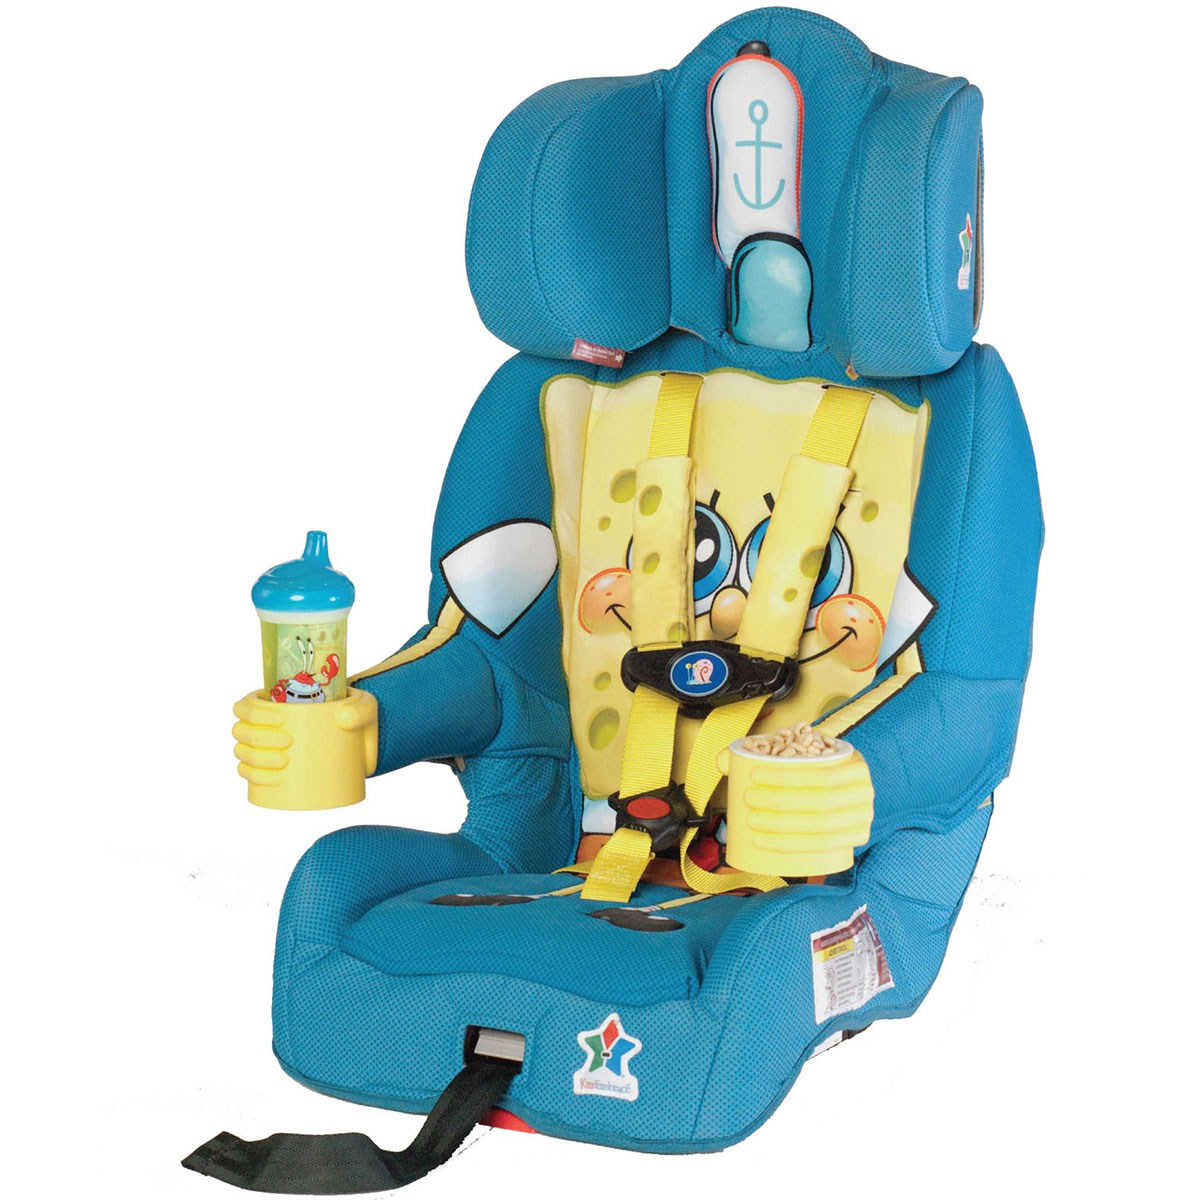 KidsEmbrace Combination Booster Car Seat - SpongeBob Squa...